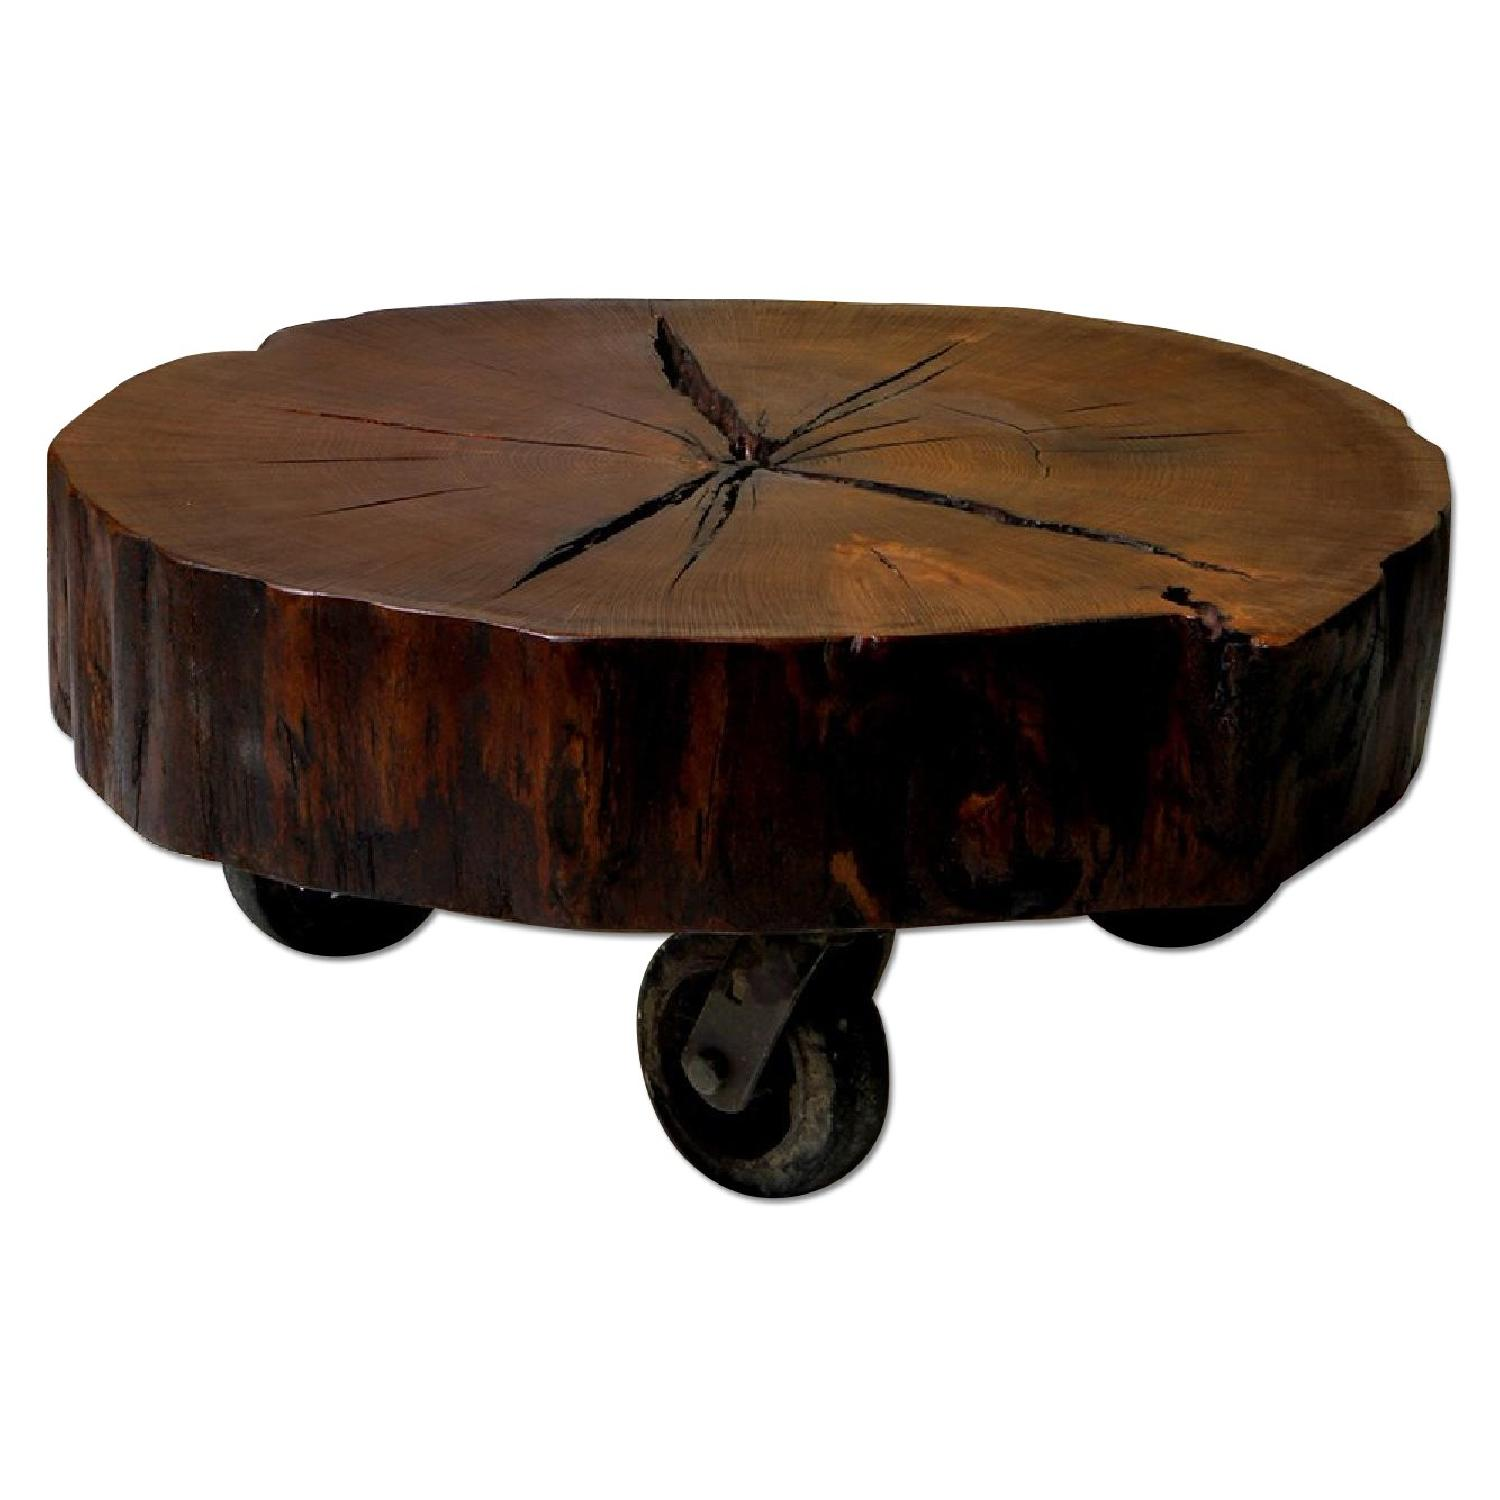 Reclaimed Oak Tree Trunk Table on Reclaimed Industrial Casters - image-0